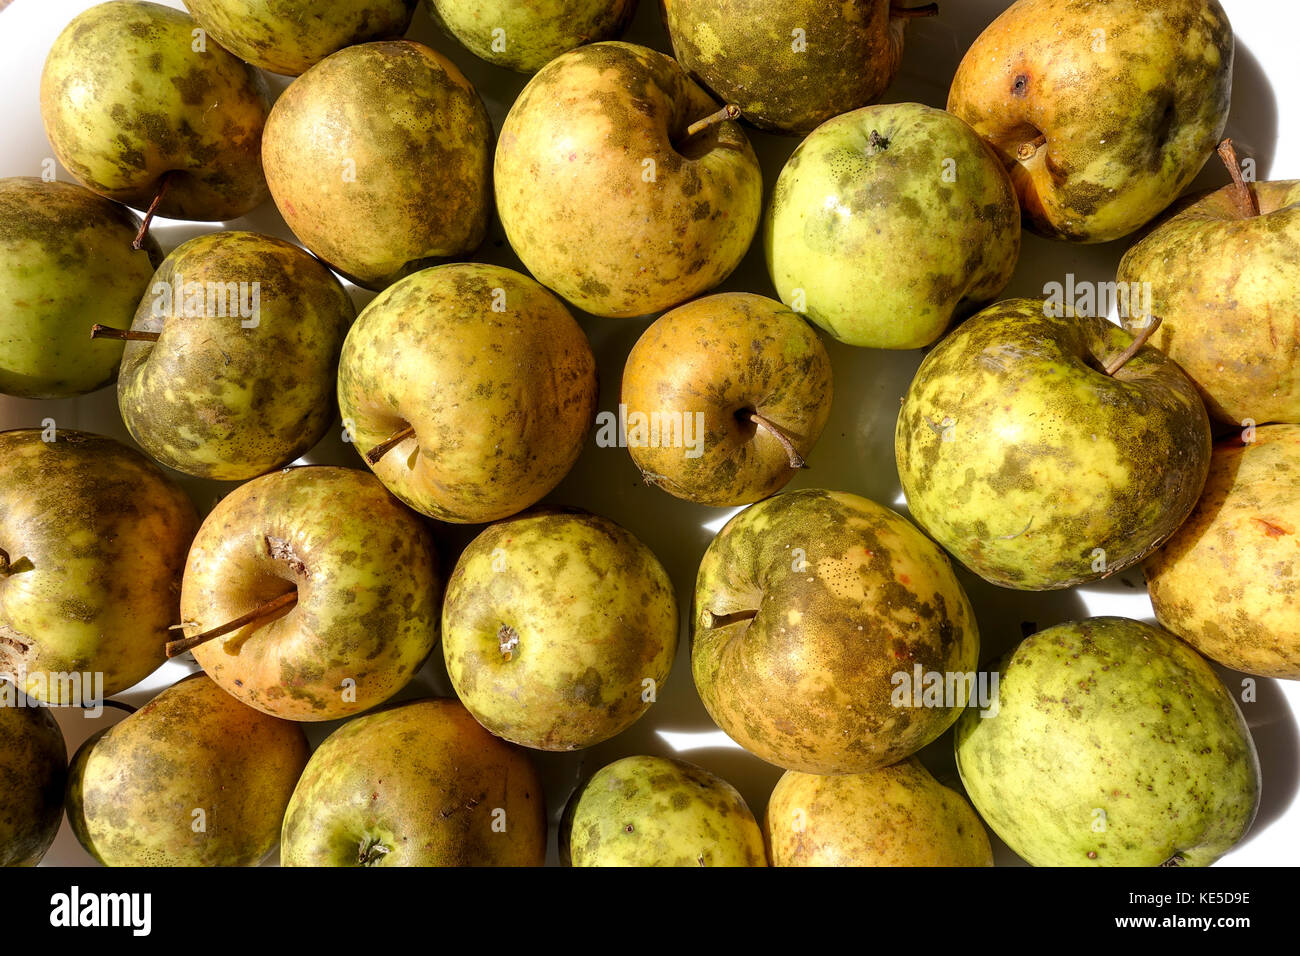 Apples affected by Sooty Blotch fungus. USA. - Stock Image